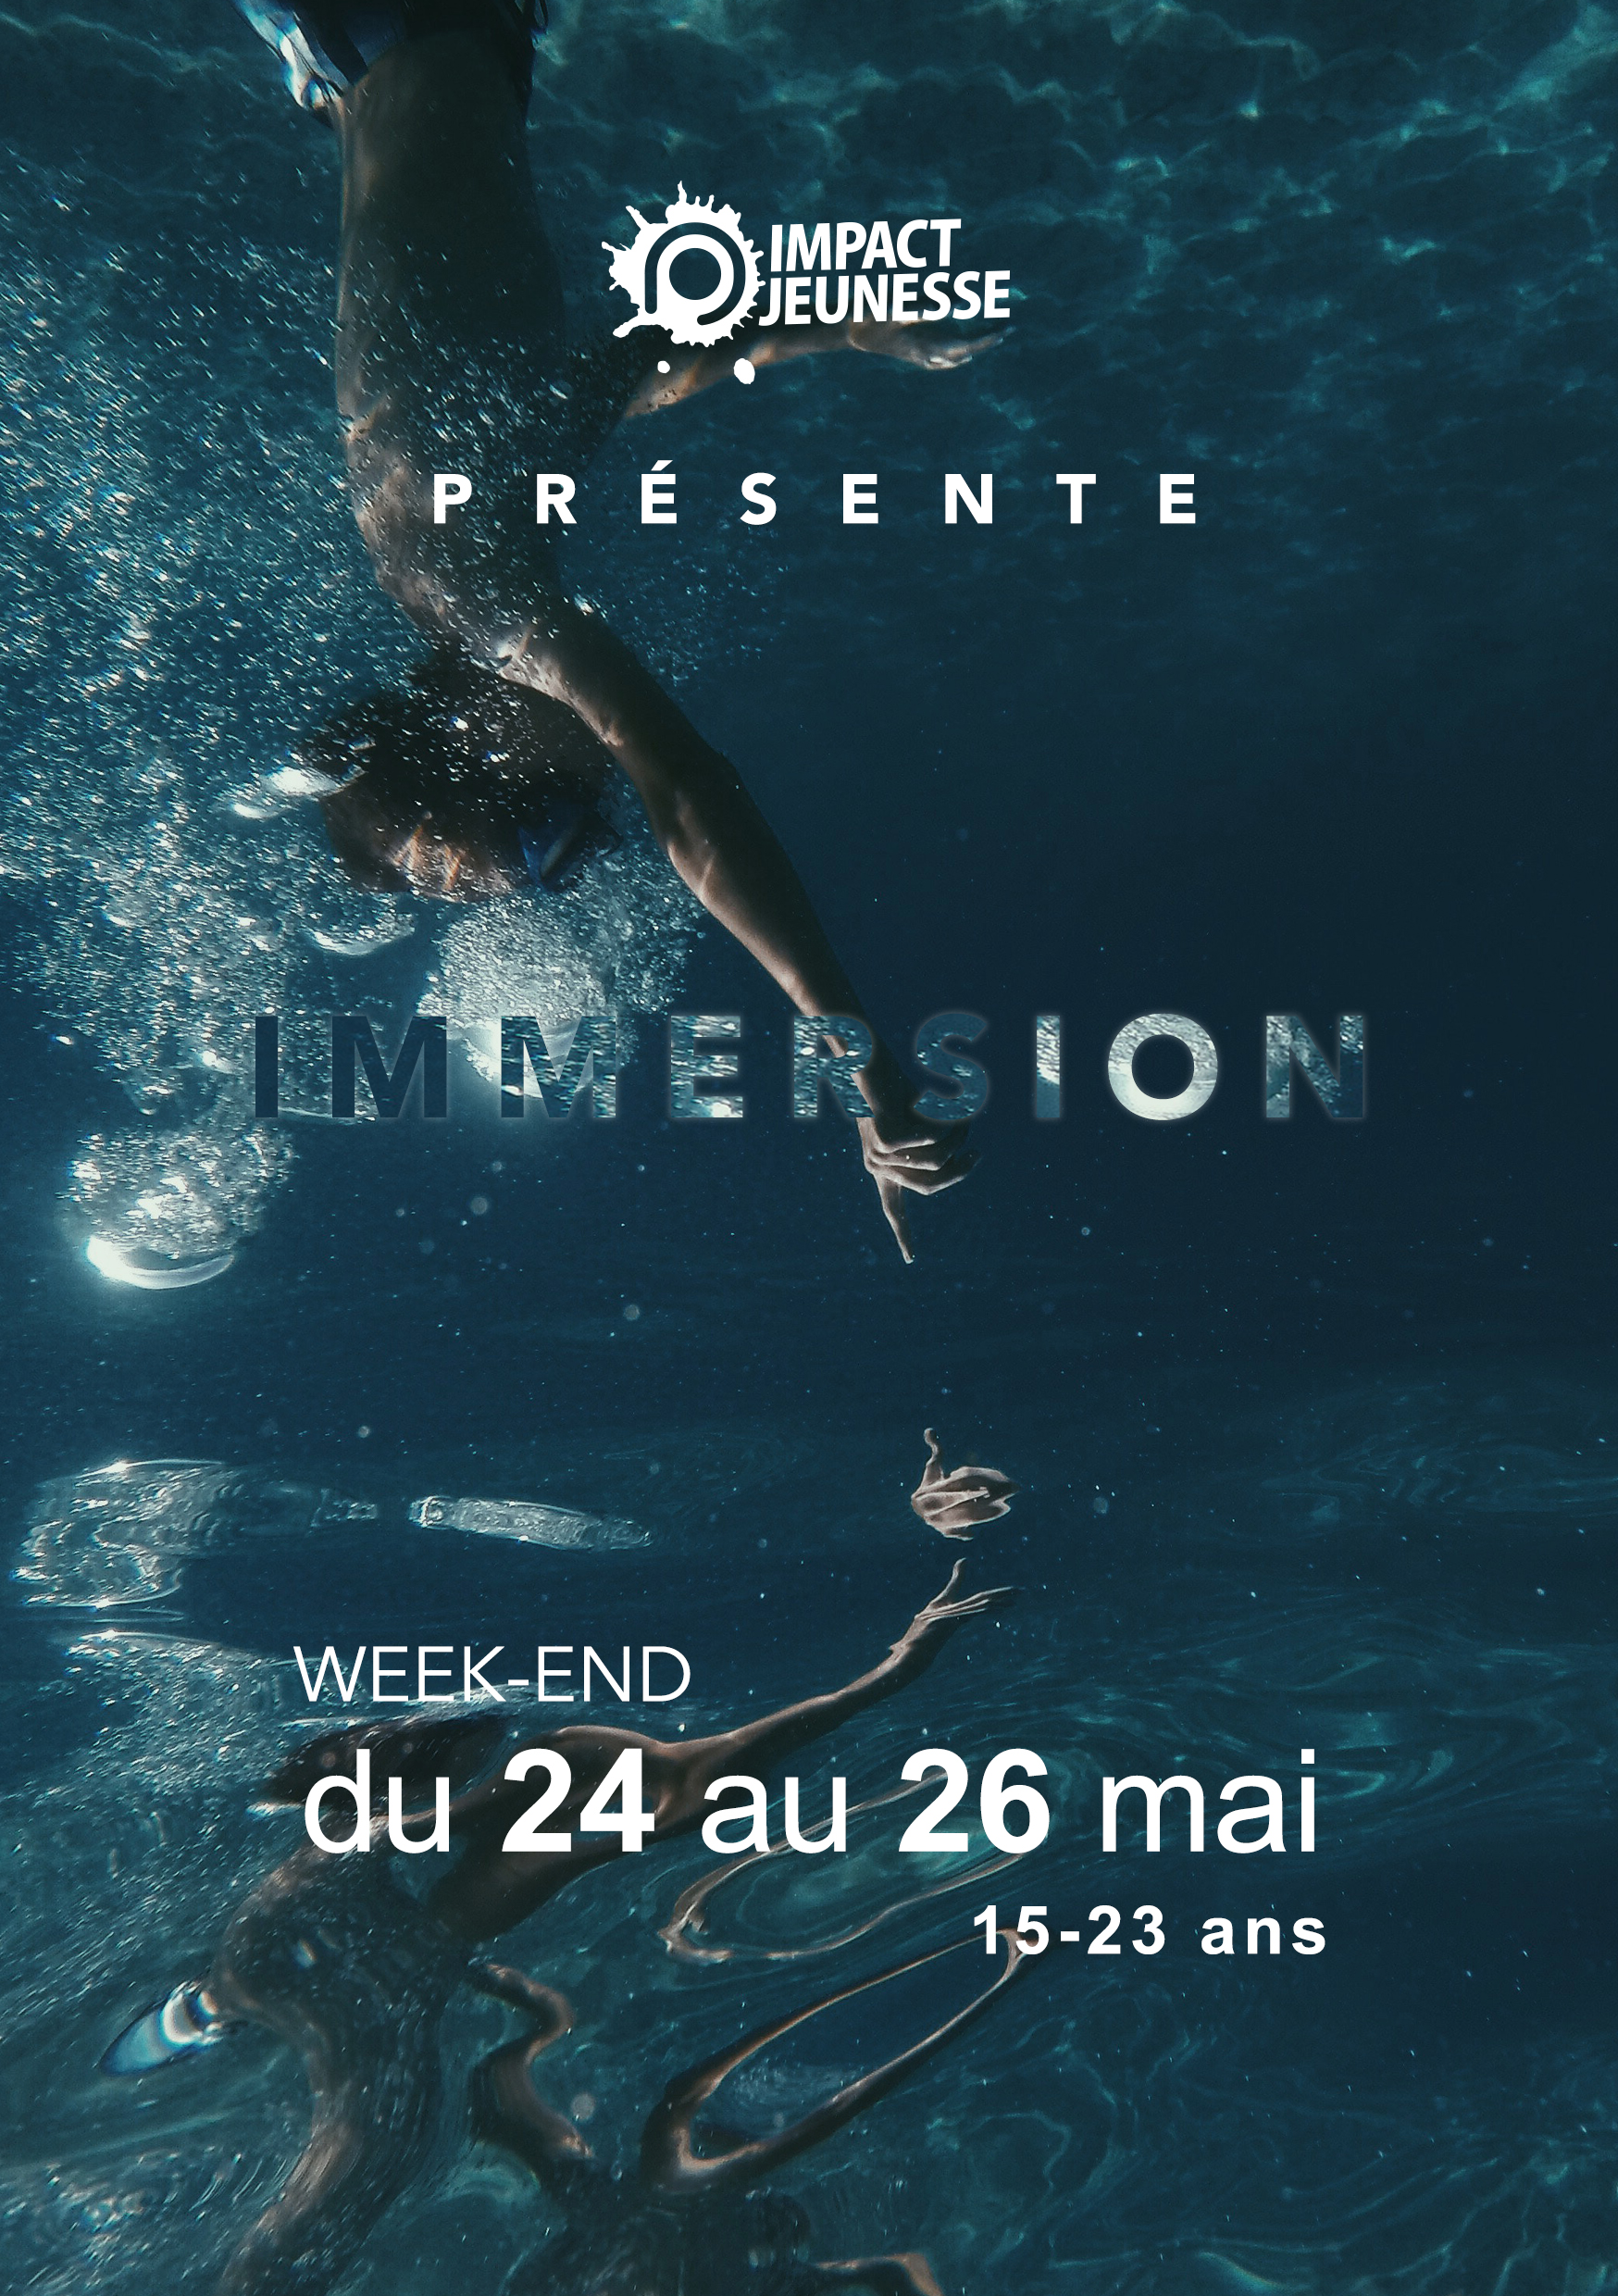 po Impact Jeunesse – Weekend IMMERSION